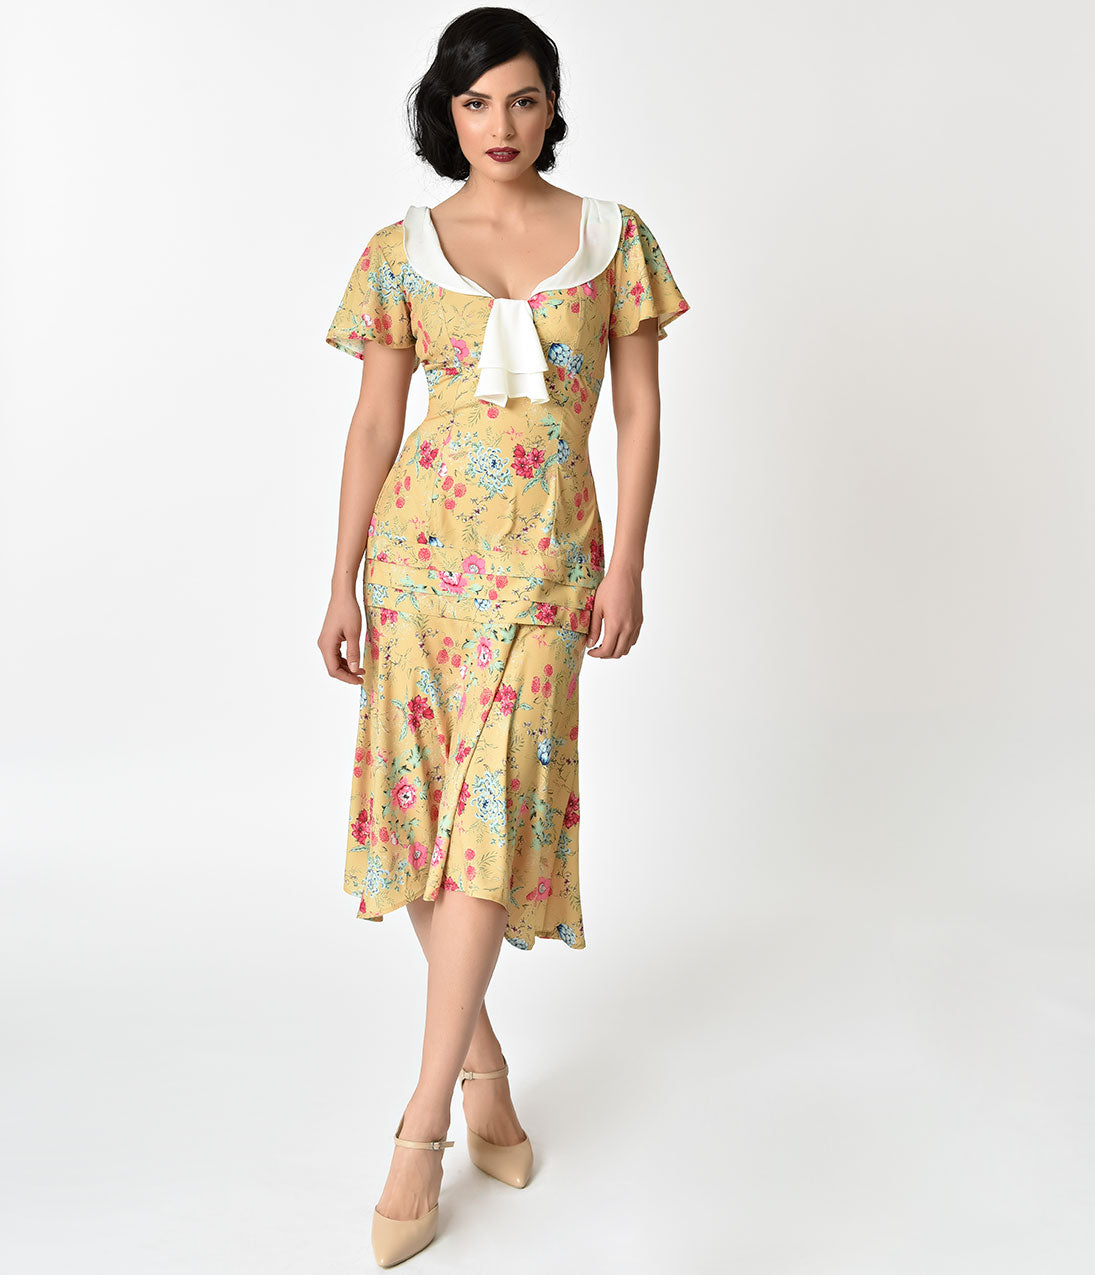 Roaring 20s Costumes- Flapper Costumes, Gangster Costumes Unique Vintage 1920S Style Yellow Wildflower Print Wilshire Flapper Day Dress $98.00 AT vintagedancer.com